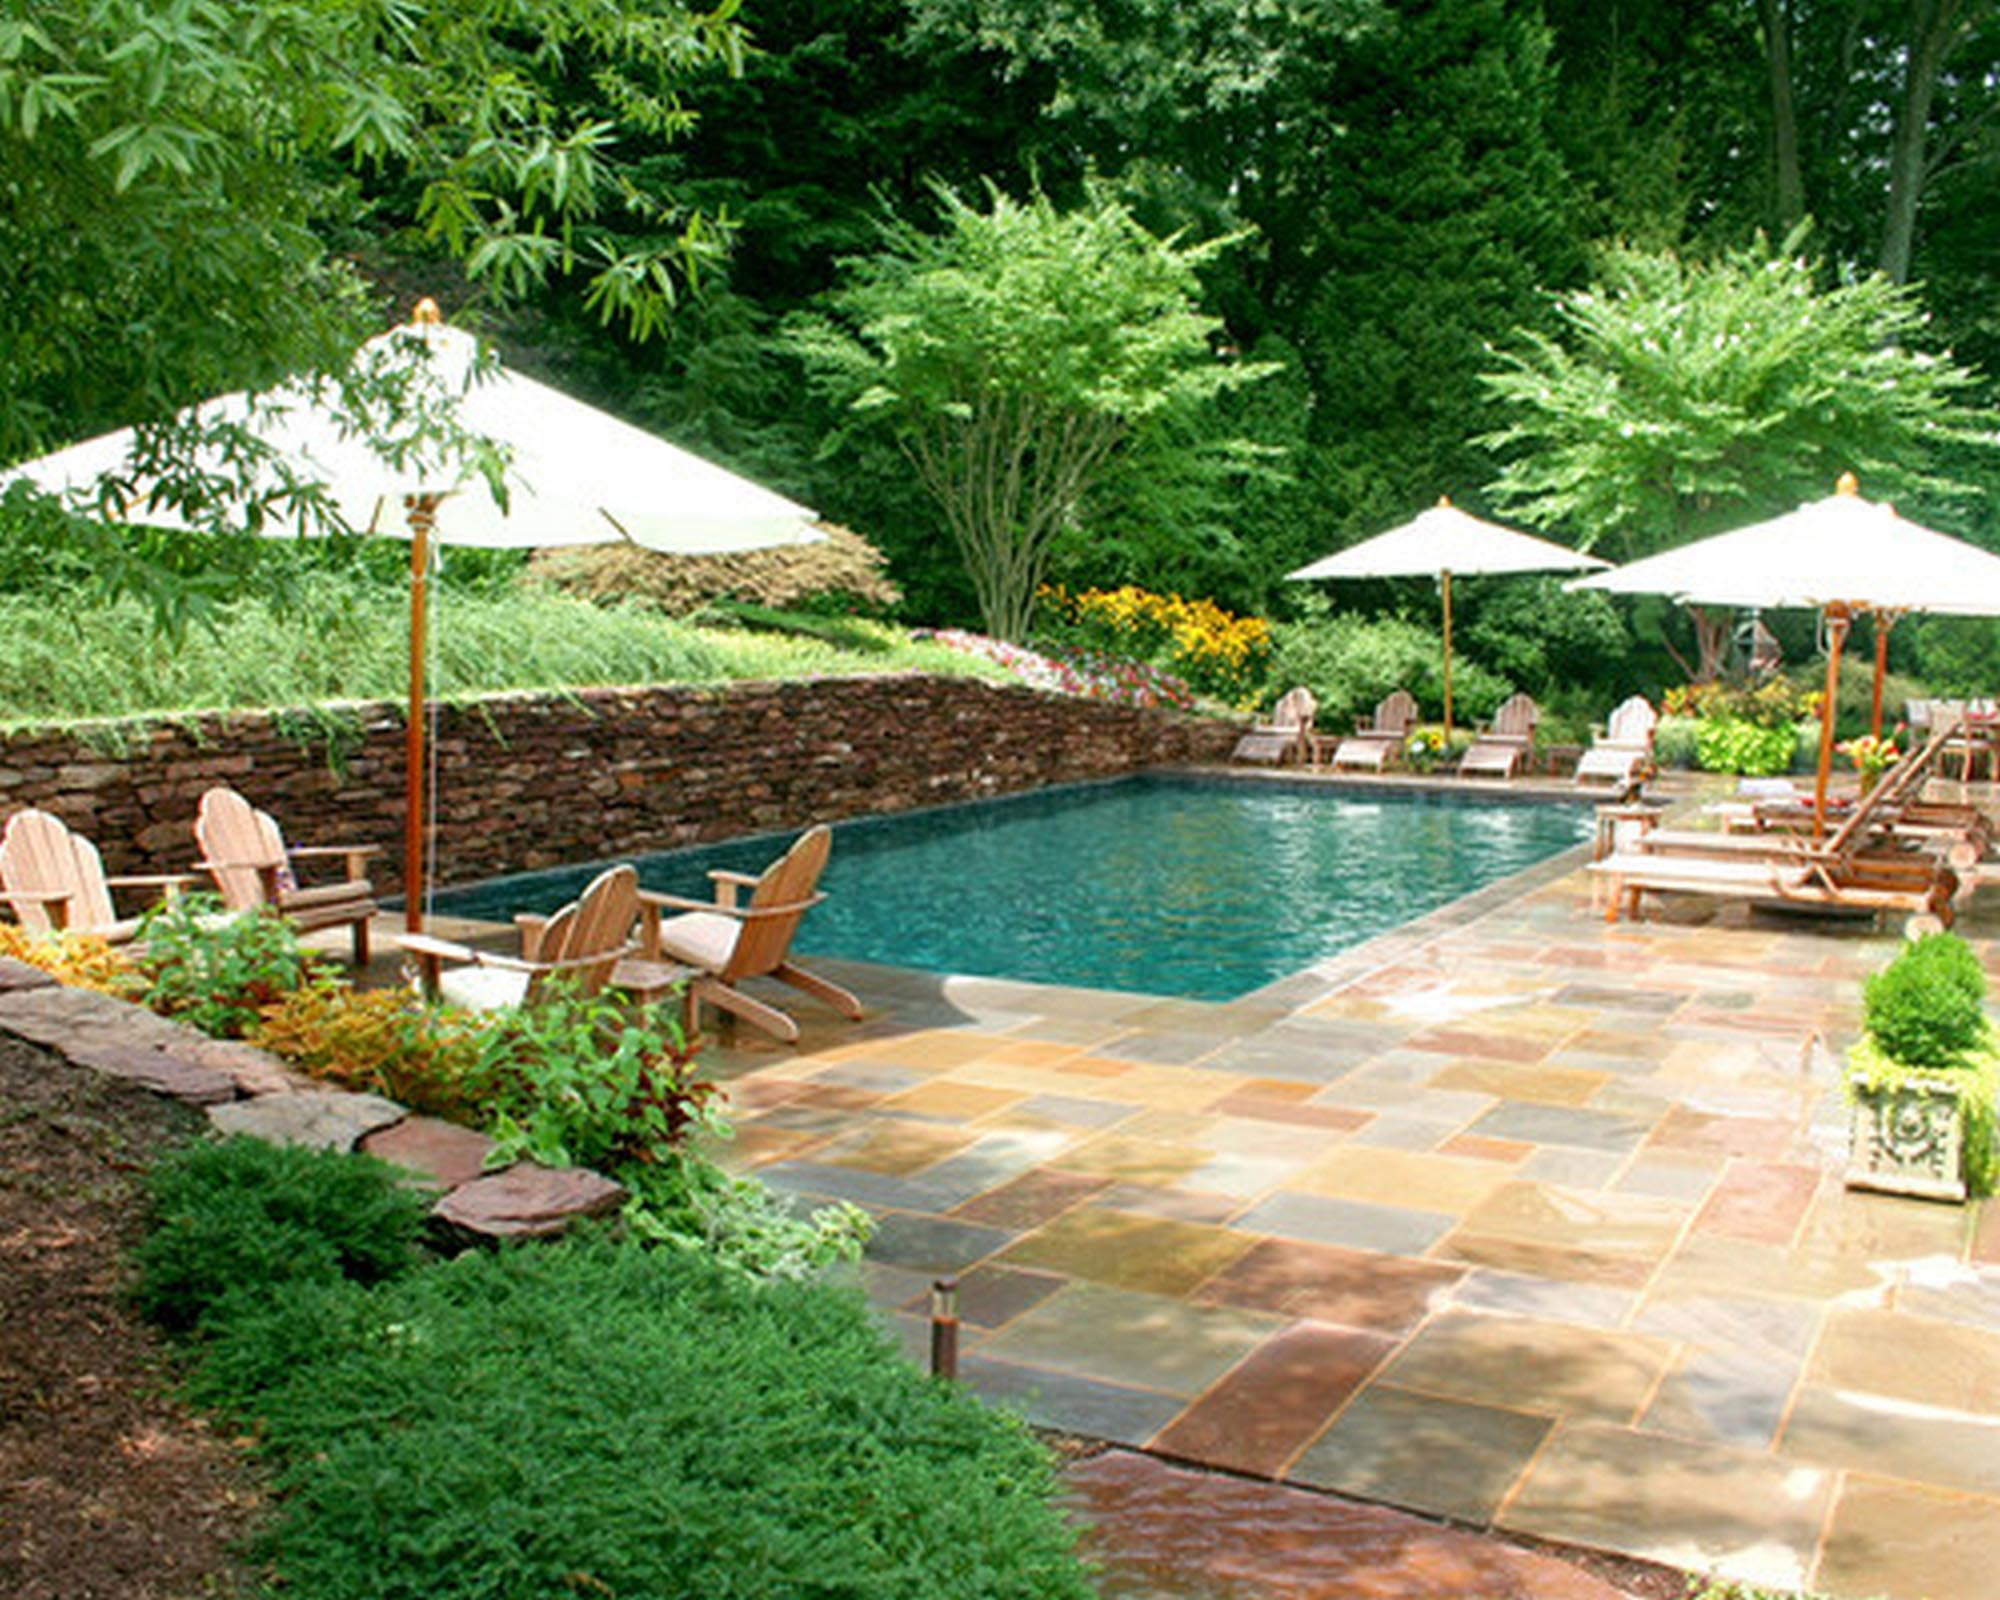 Backyard Pool Design Tool :  pools tool with swimming pool killer house backyard design with curve